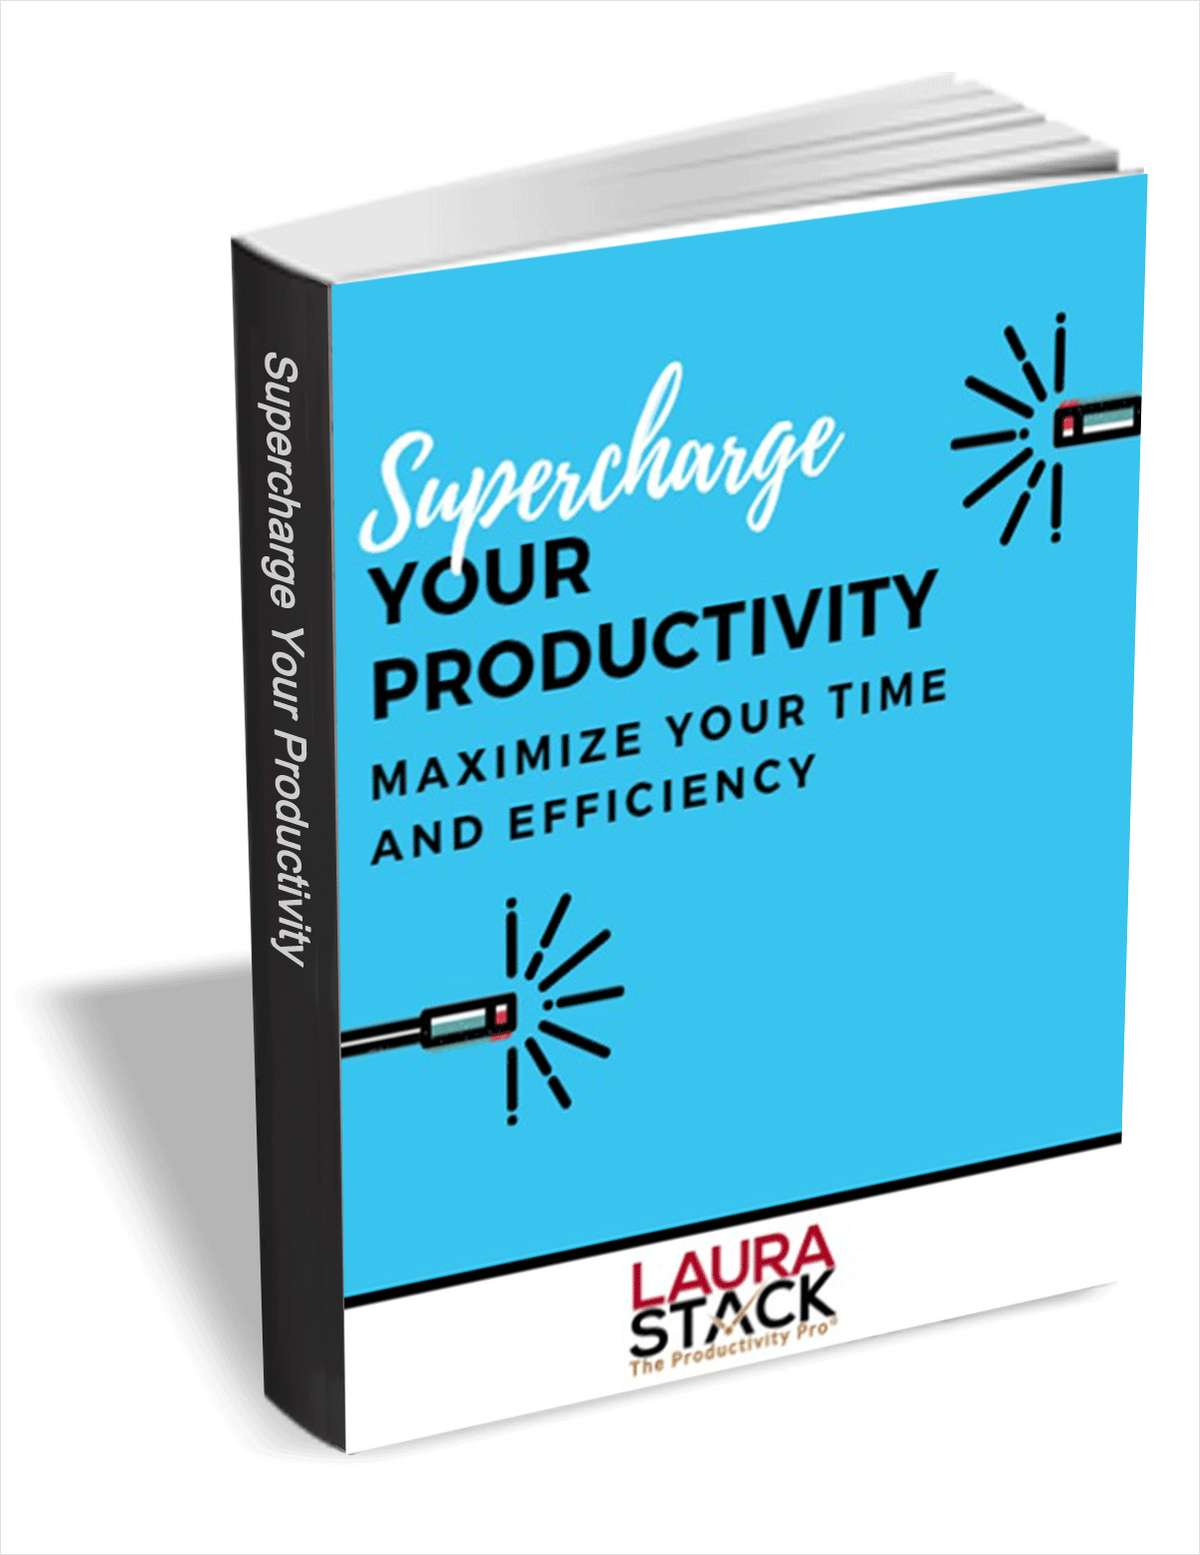 Supercharge Your Productivity - Maximize Your Time and Efficiency